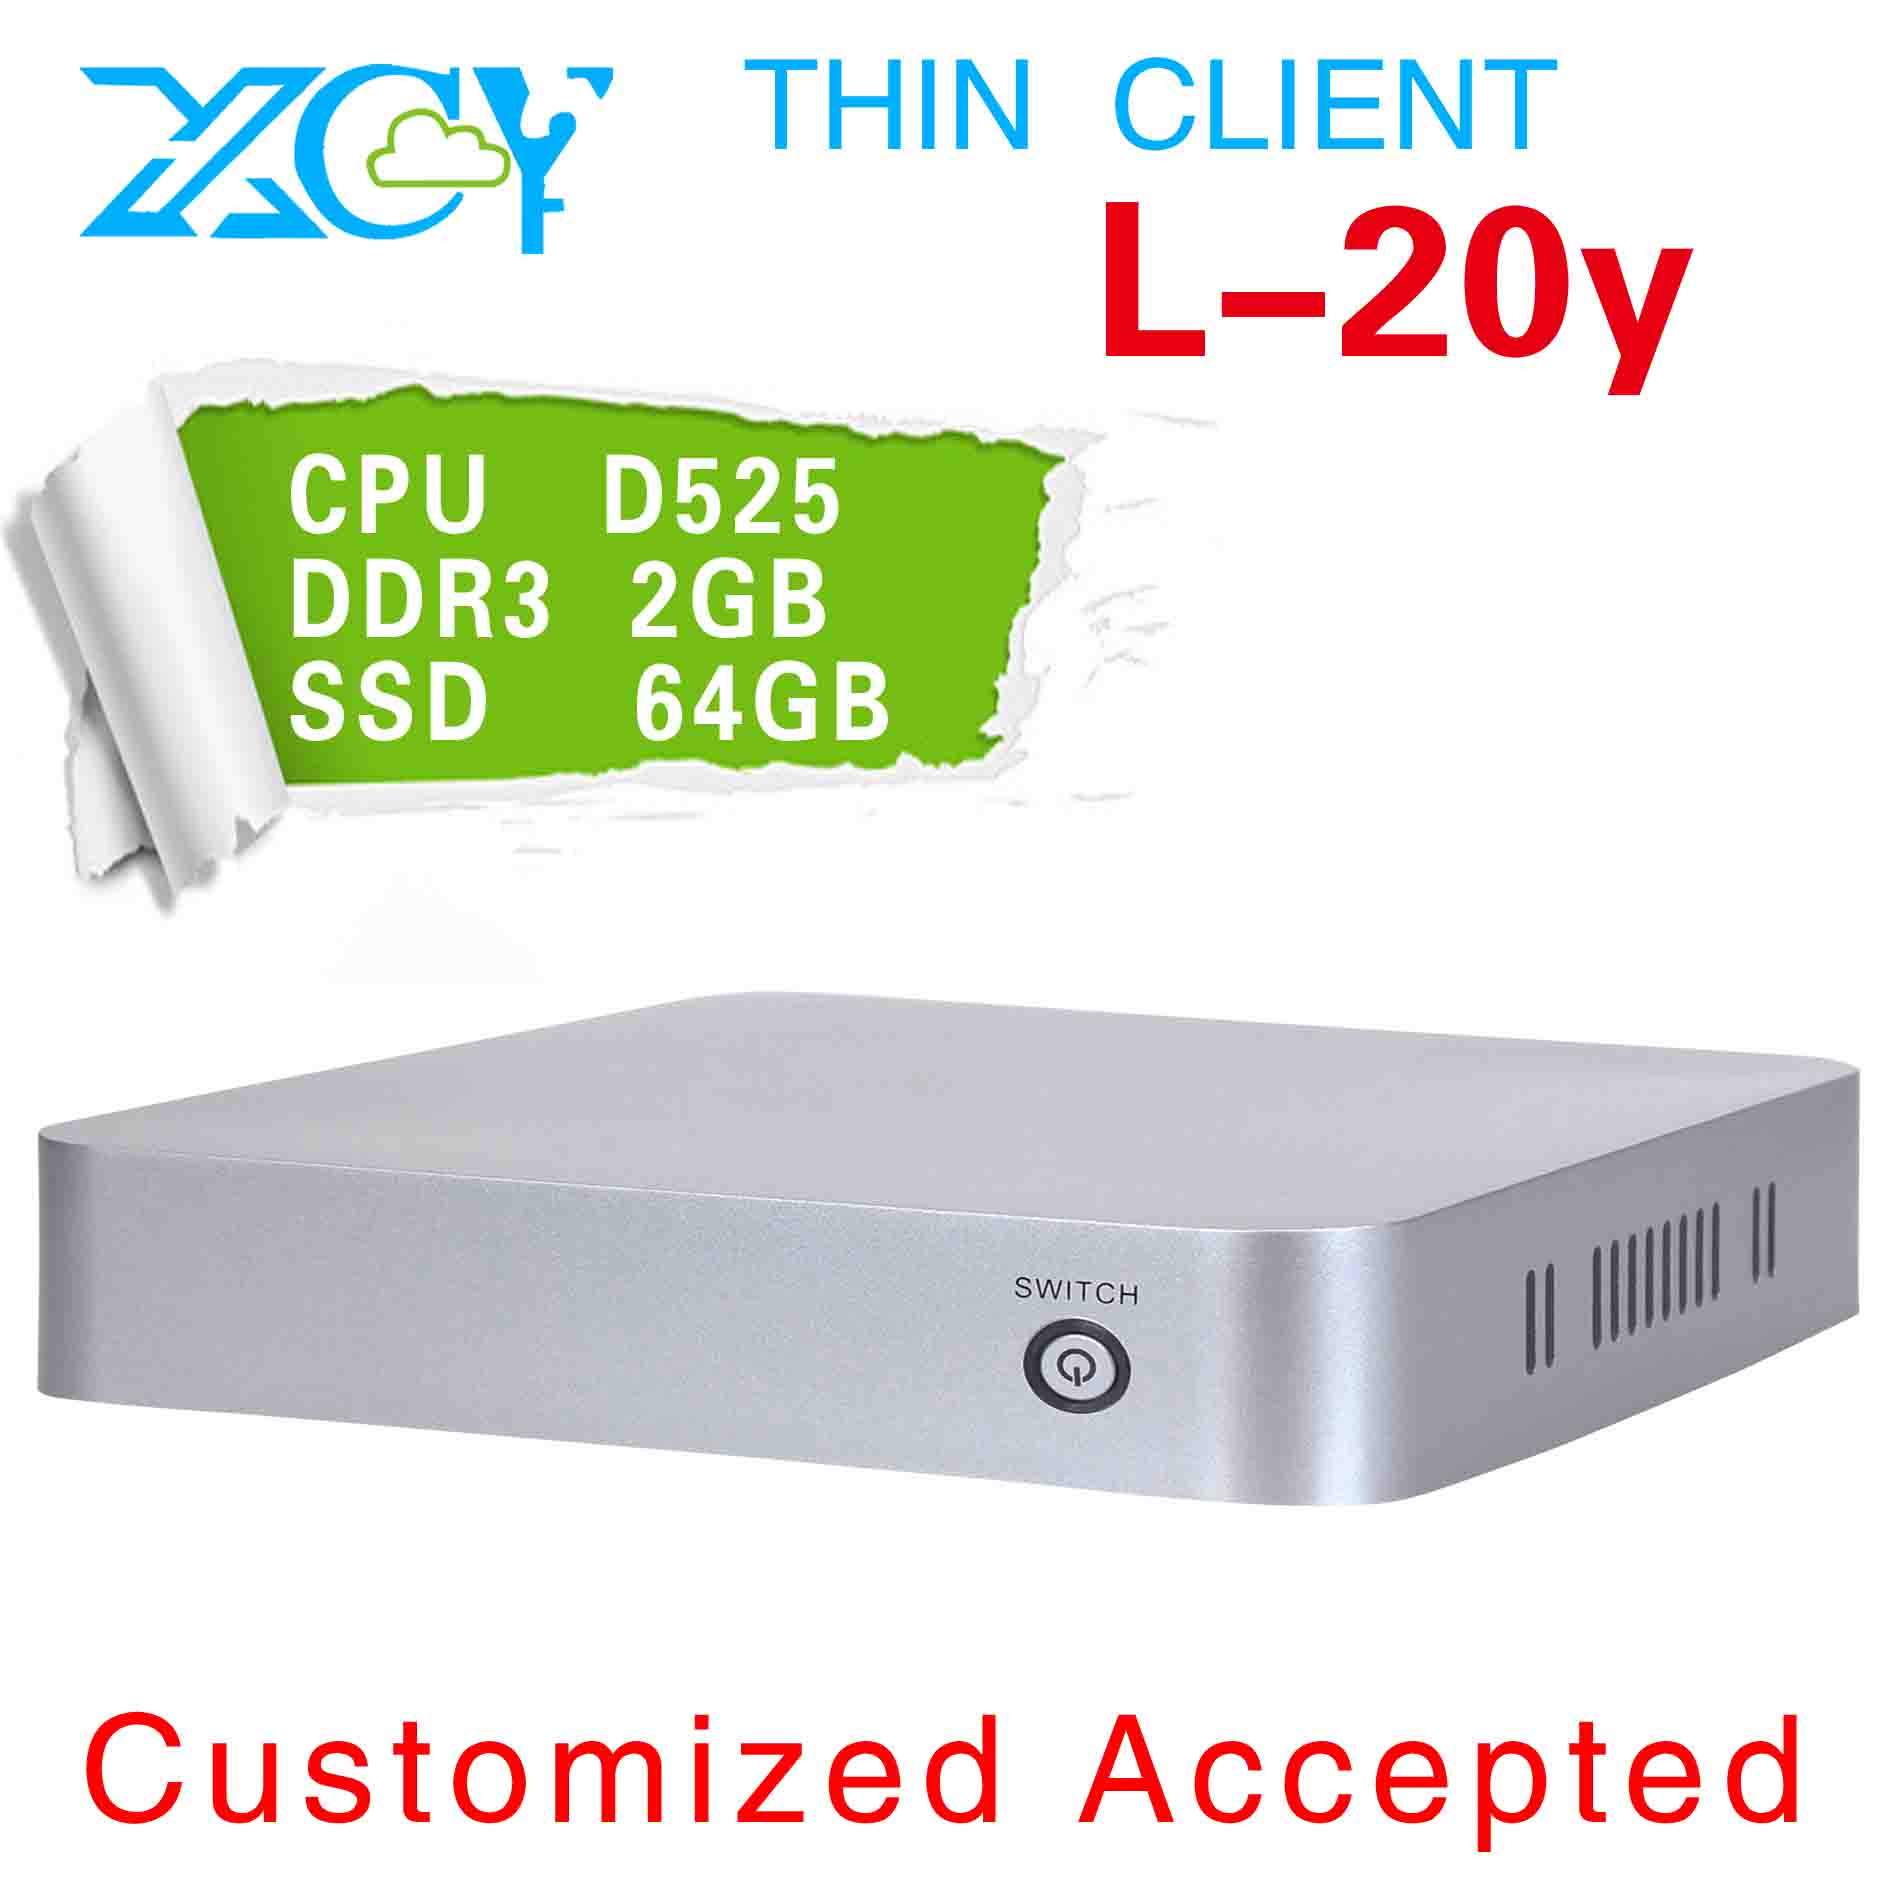 XCY L-20Y With high-powered CPU and Graphics Card MINI ITX PC, desktop pc, Ultra thin PC, 64G SSD(China (Mainland))